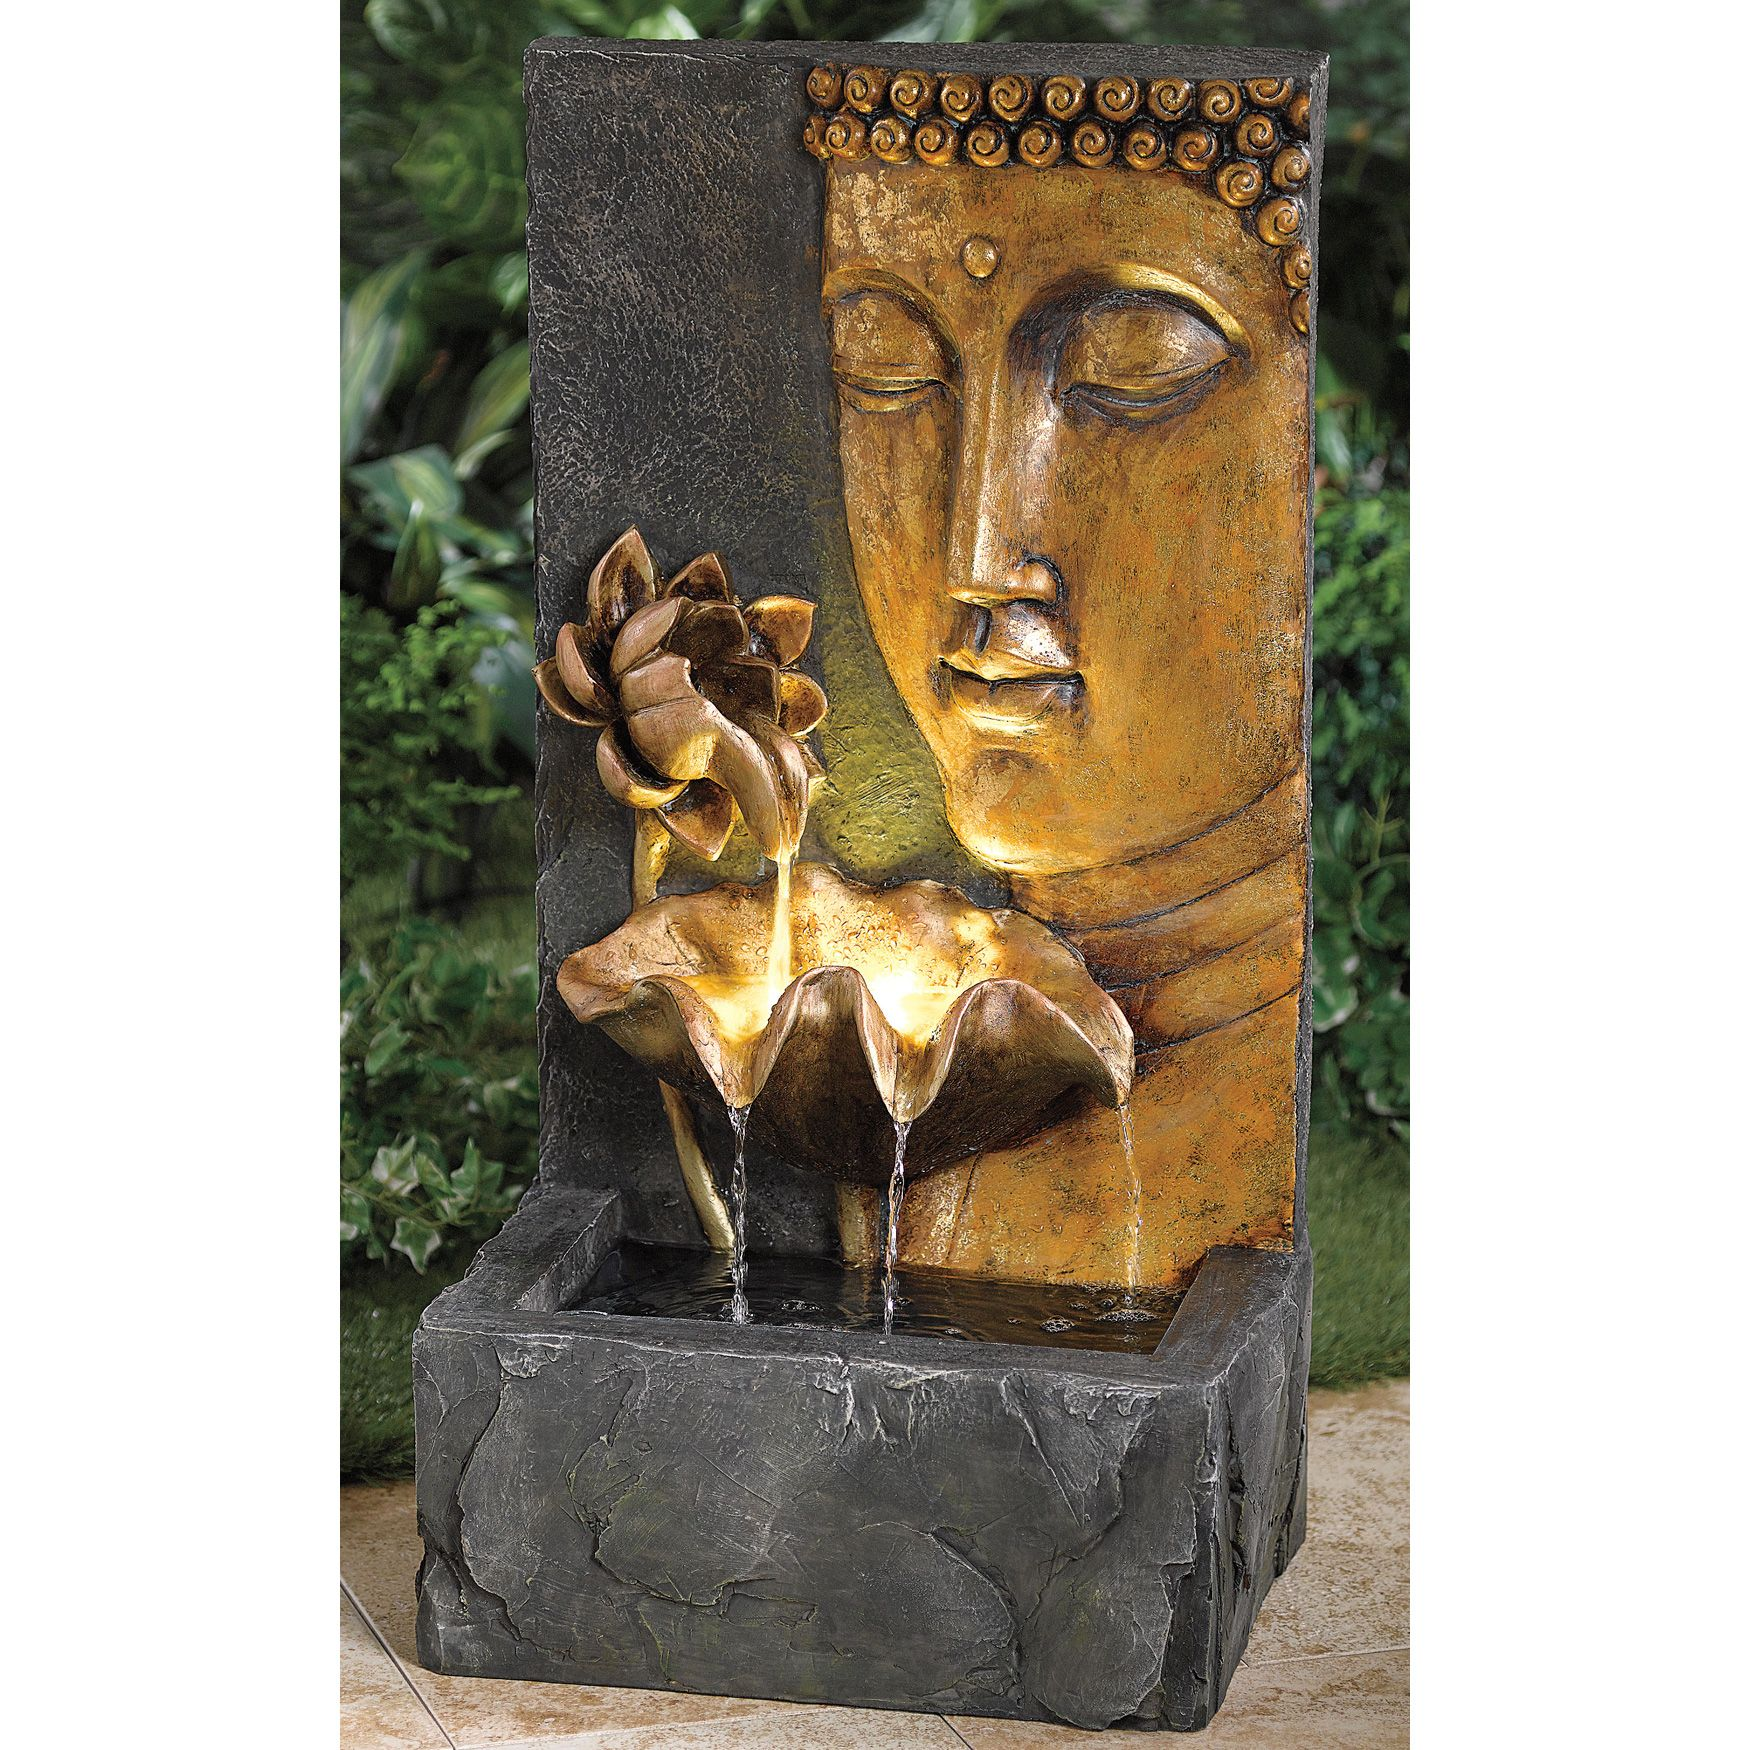 Hand Painted Buddha Face Fountain Indoor Water Fountains Buddha